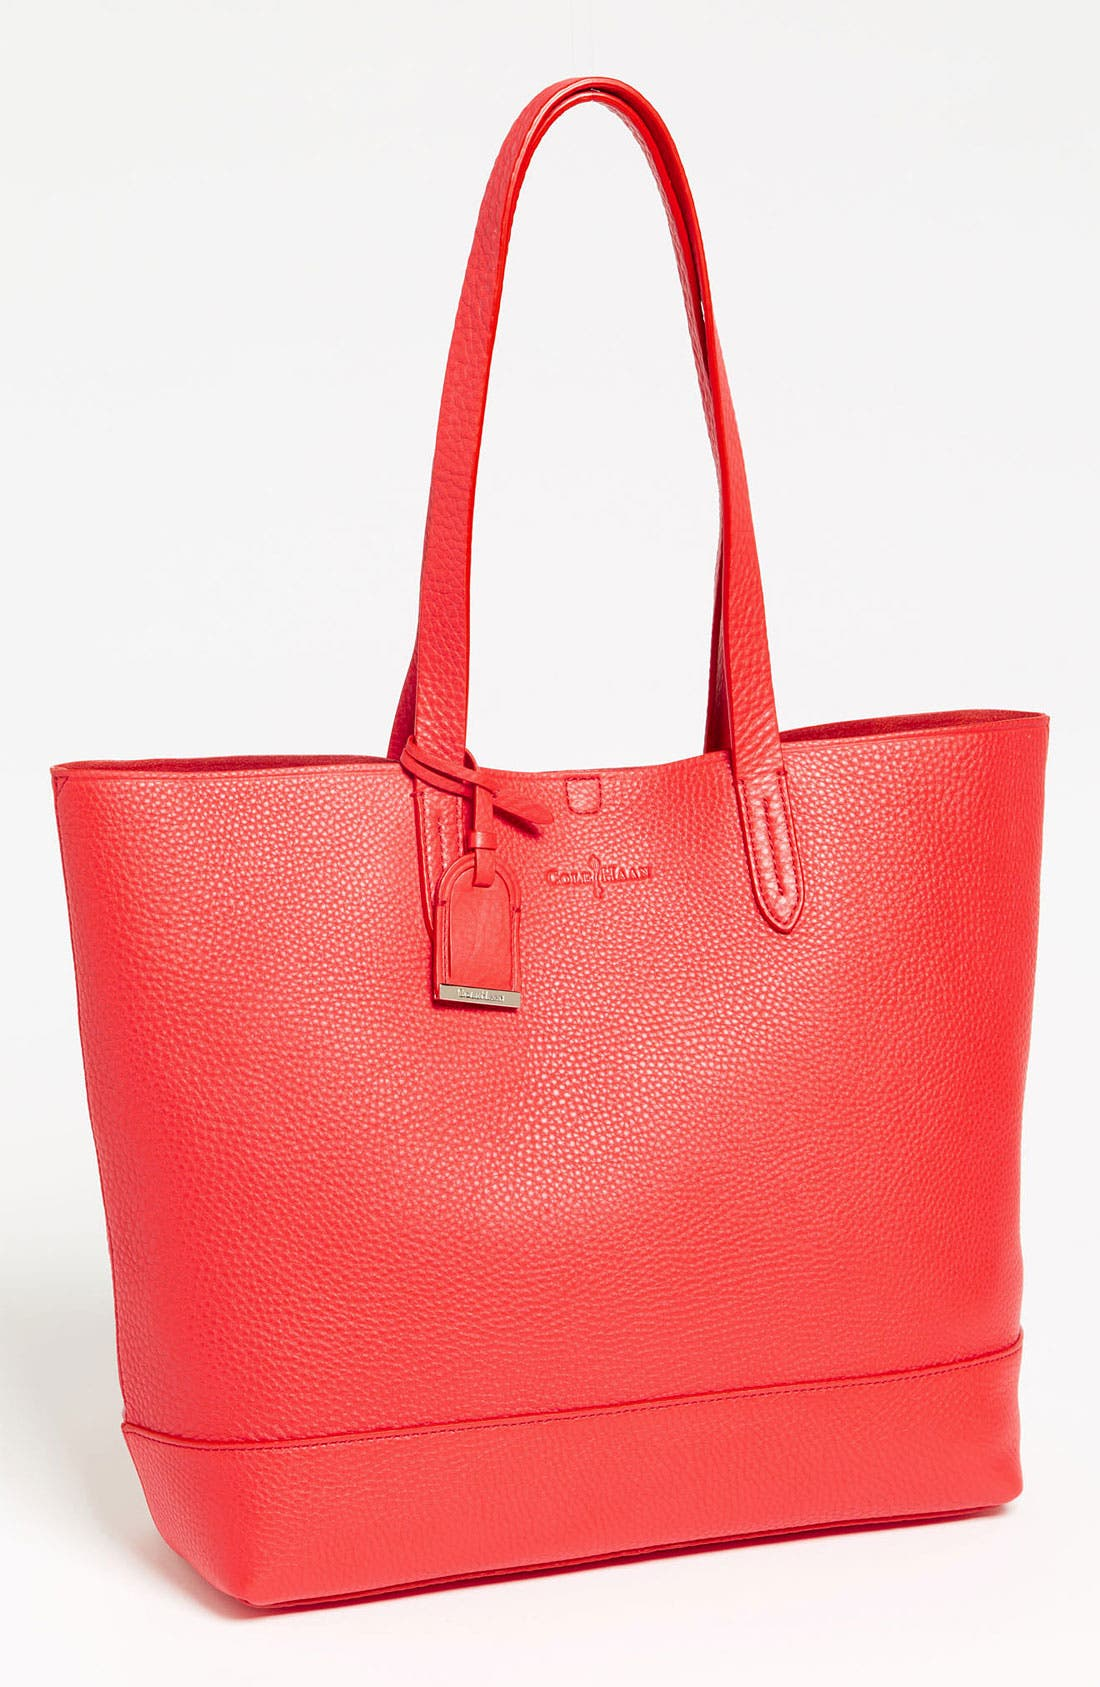 Main Image - Cole Haan 'Haven' Tote